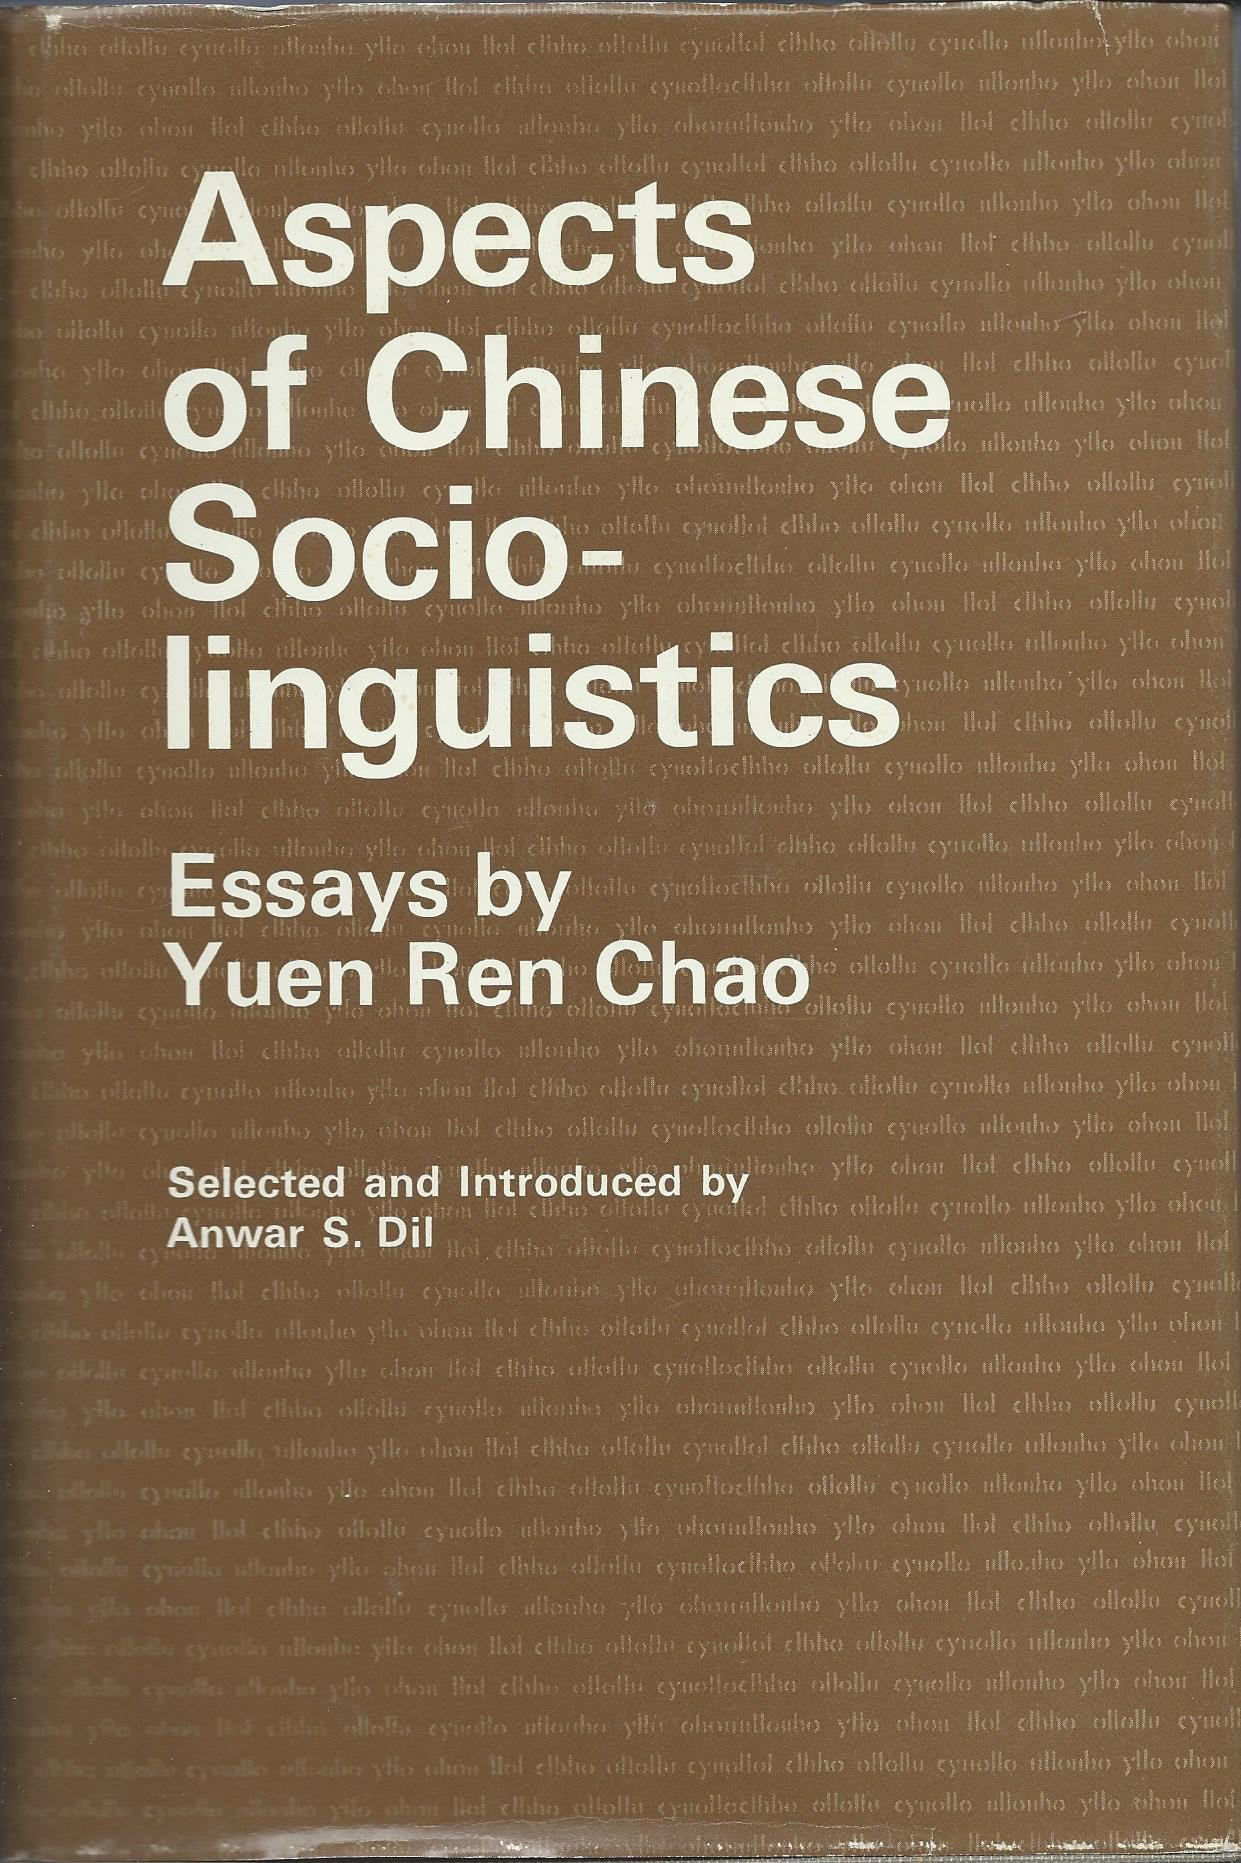 aspects of chinese sociolinguistics essays